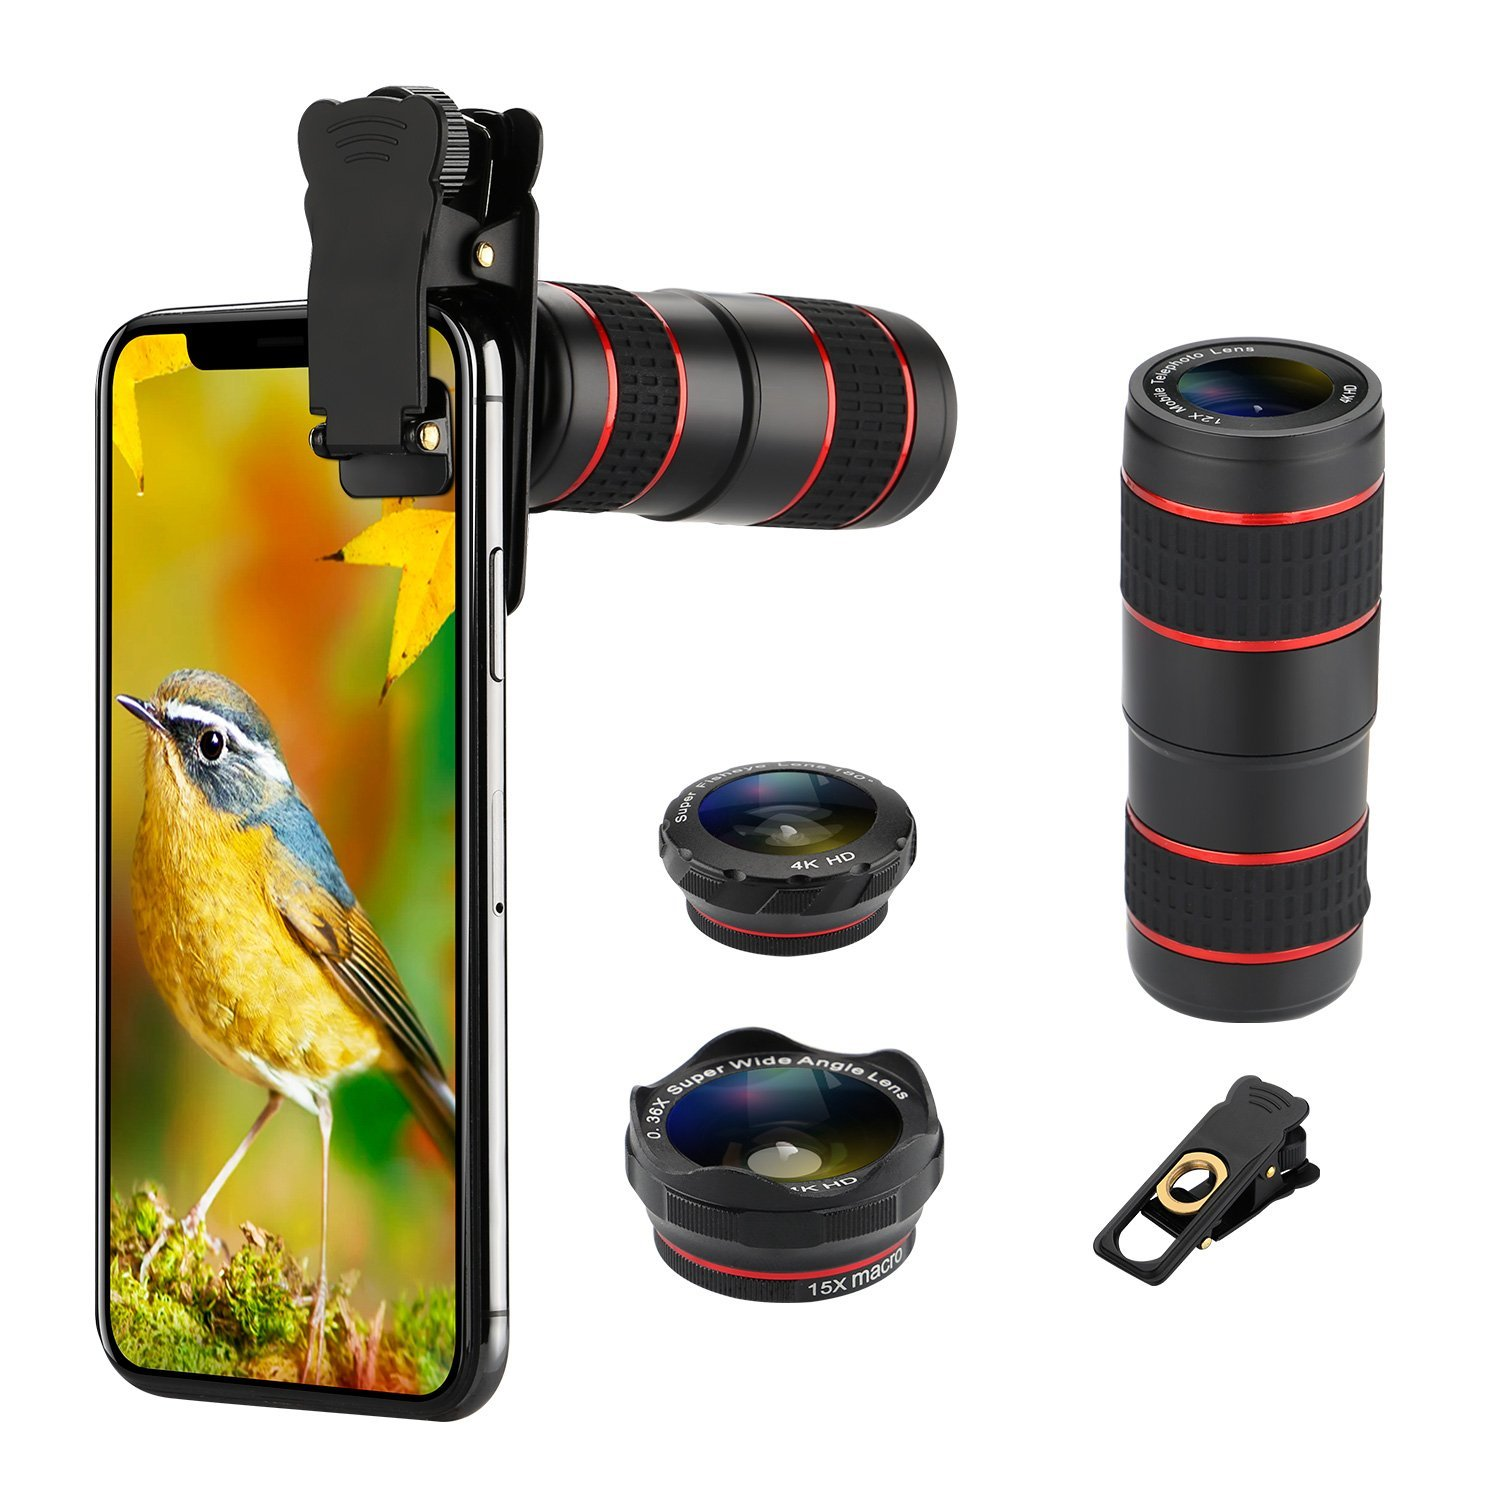 Phone Camera Lens Kit, BHUATO 12X Zoom Telephoto Lens + 0.36 Wide-Angle Lens +180° Fisheye Lens + 15X Macro Lens + Carrying Case for iPhone X/8/7/7 Plus/6/6s, Samsung and Most of Smartphones